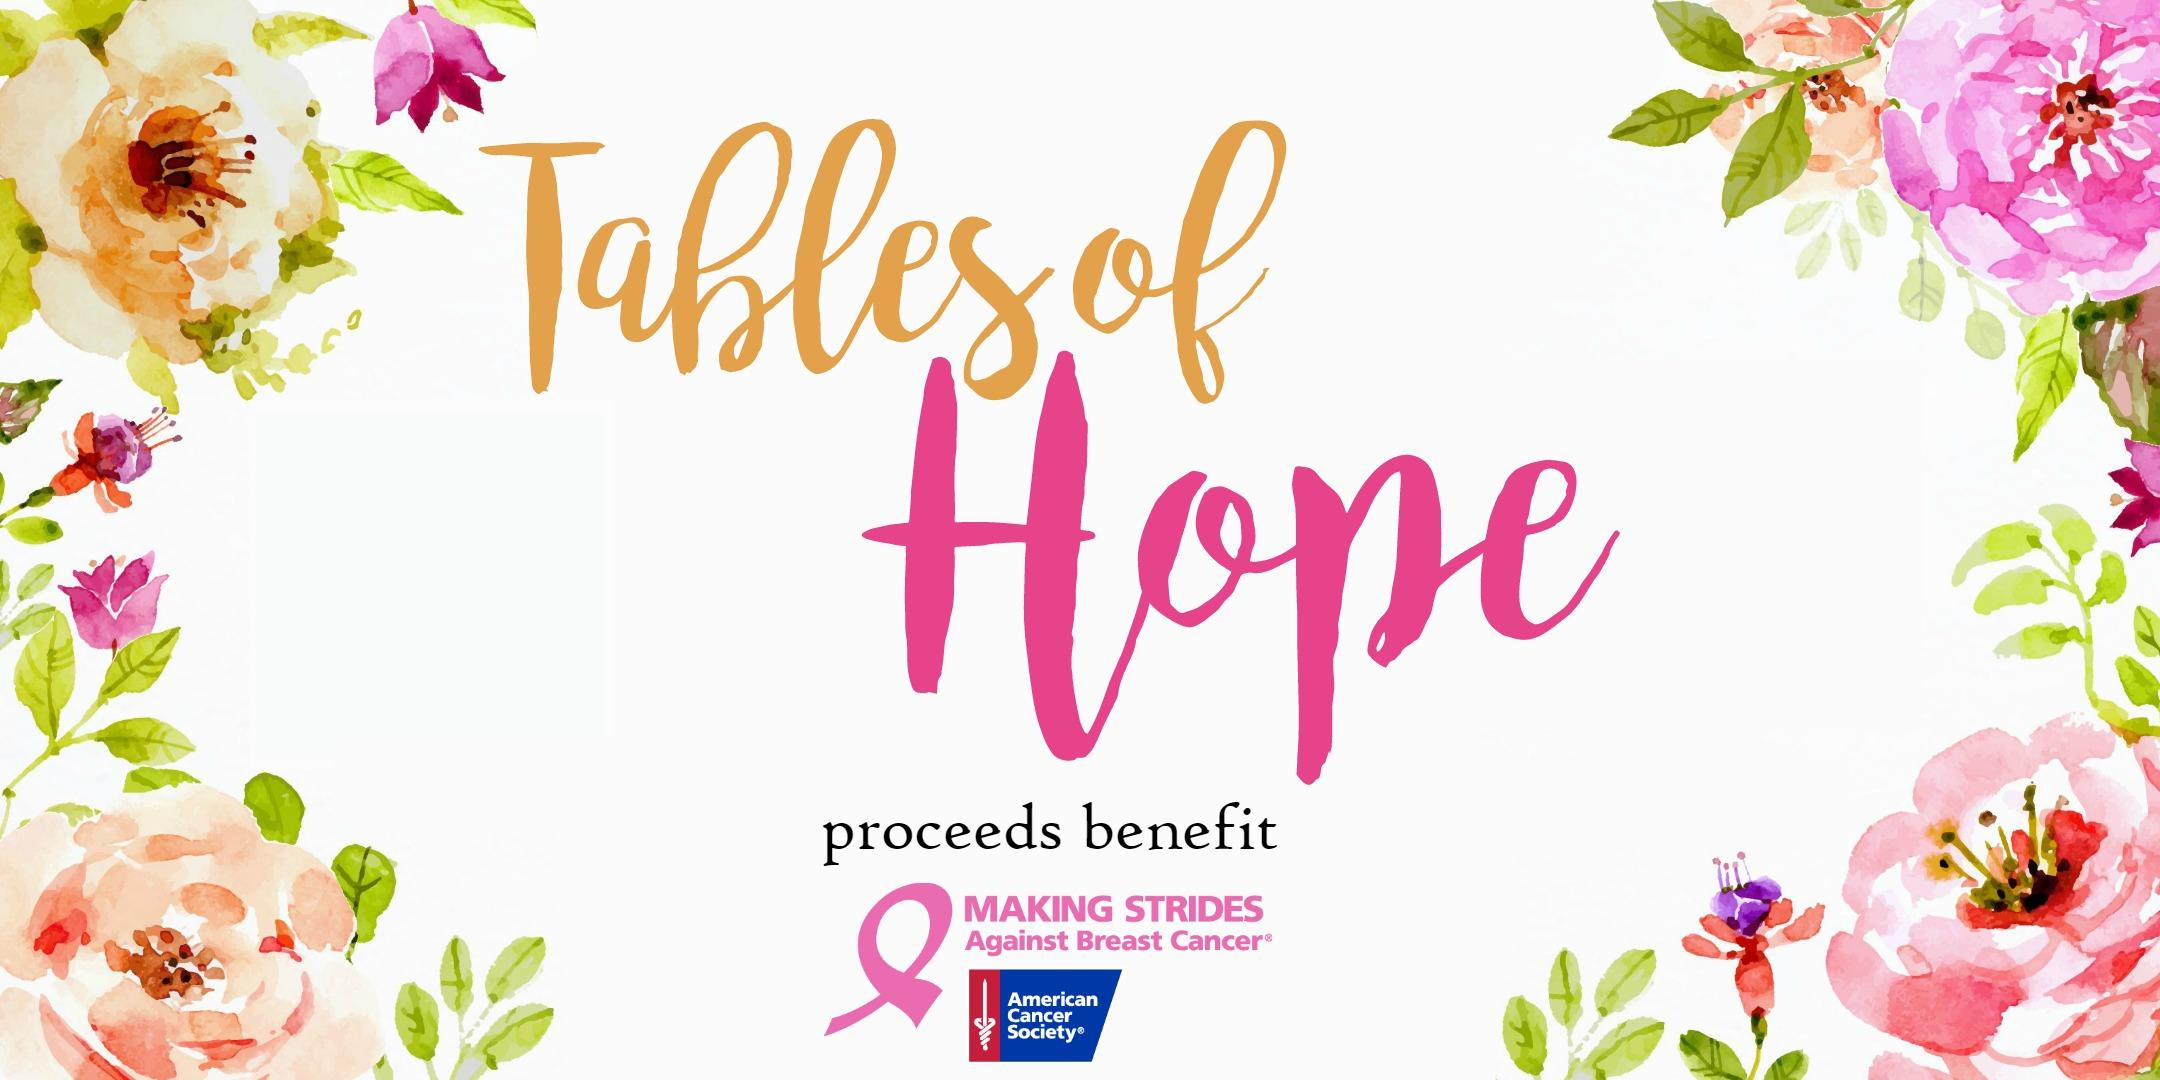 American cancer society kansas city making strides against breast tables of hope m4hsunfo